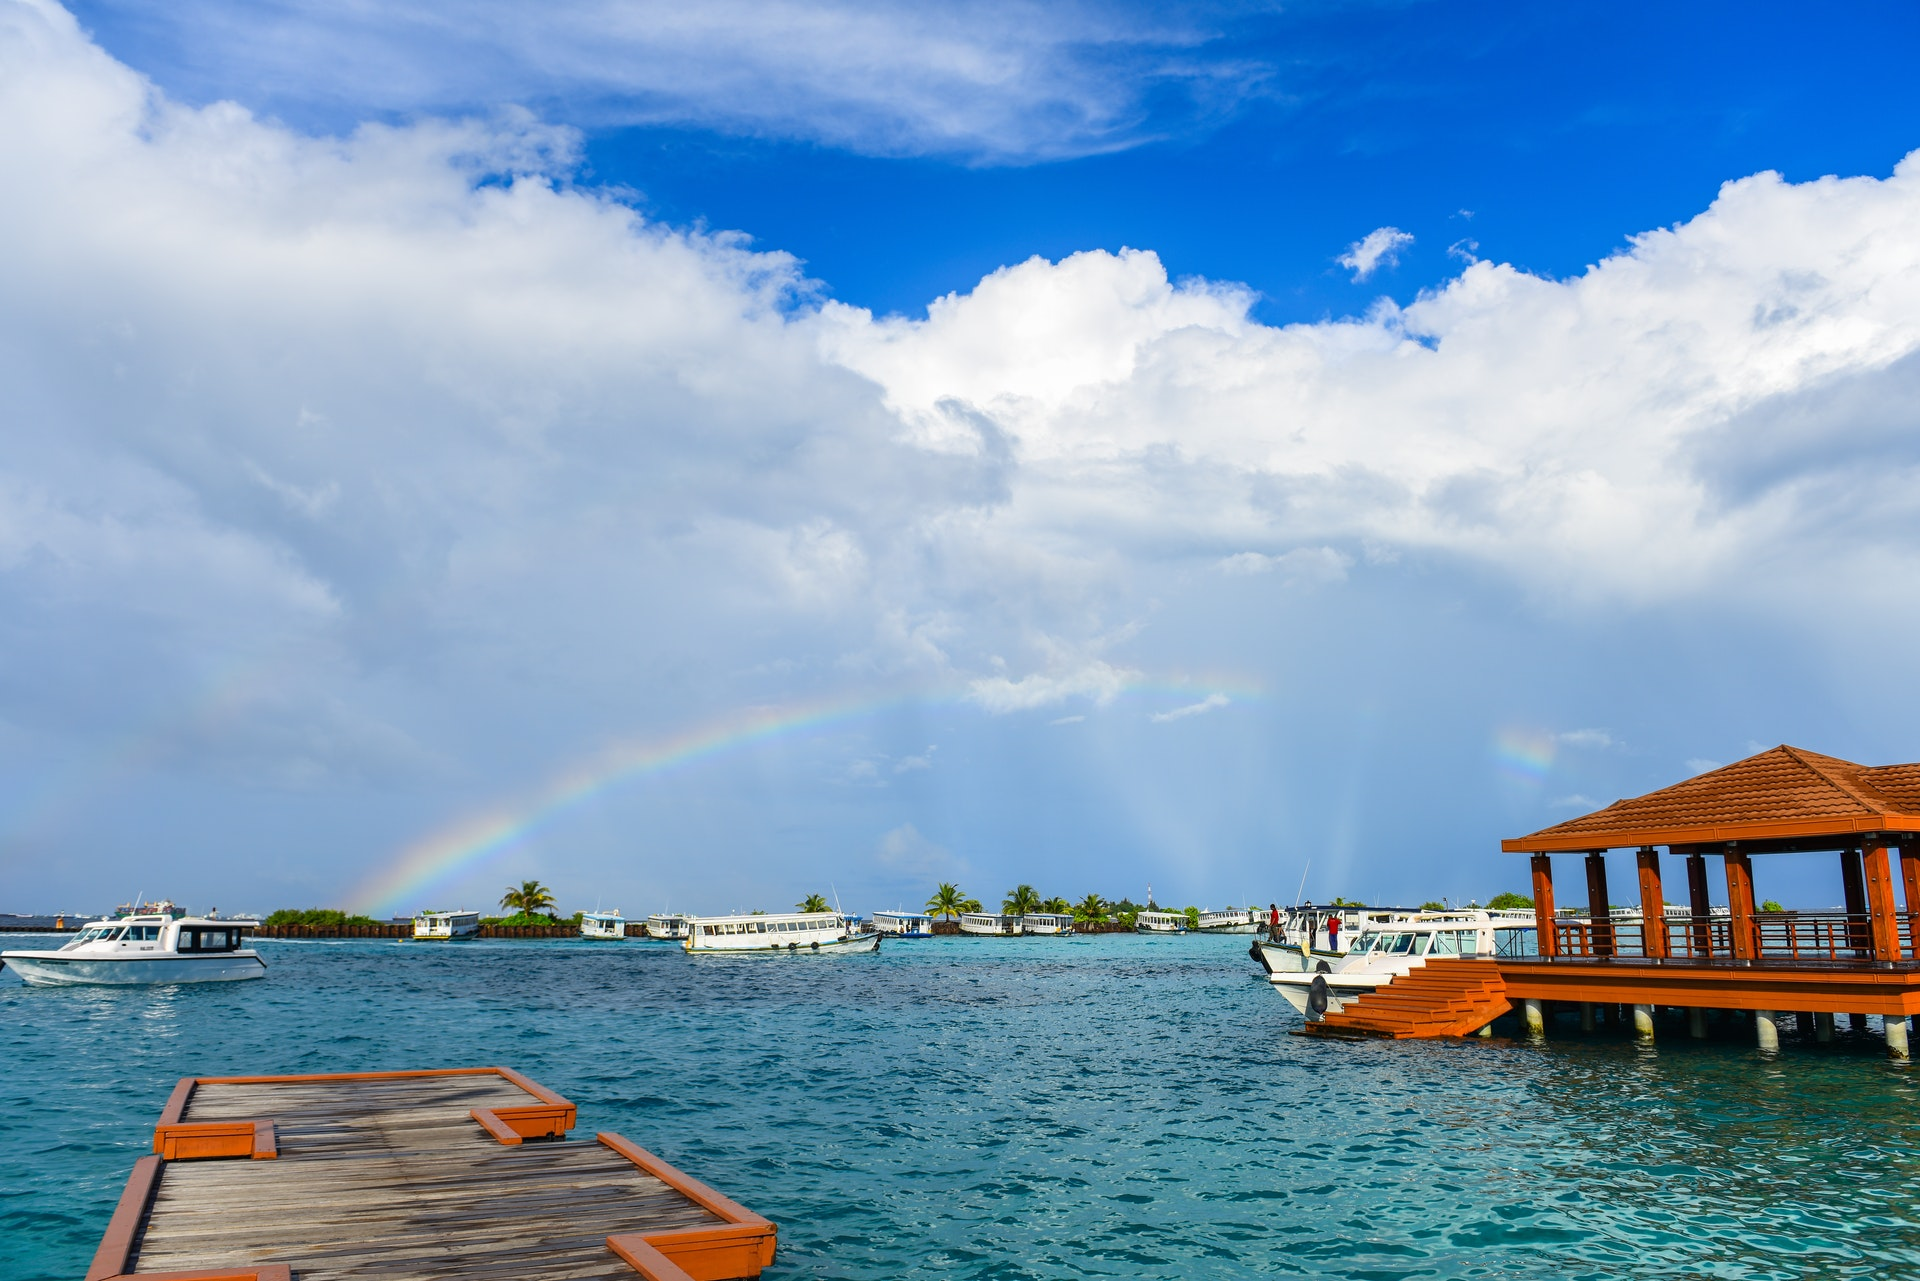 Sustainable travel in the Maldives